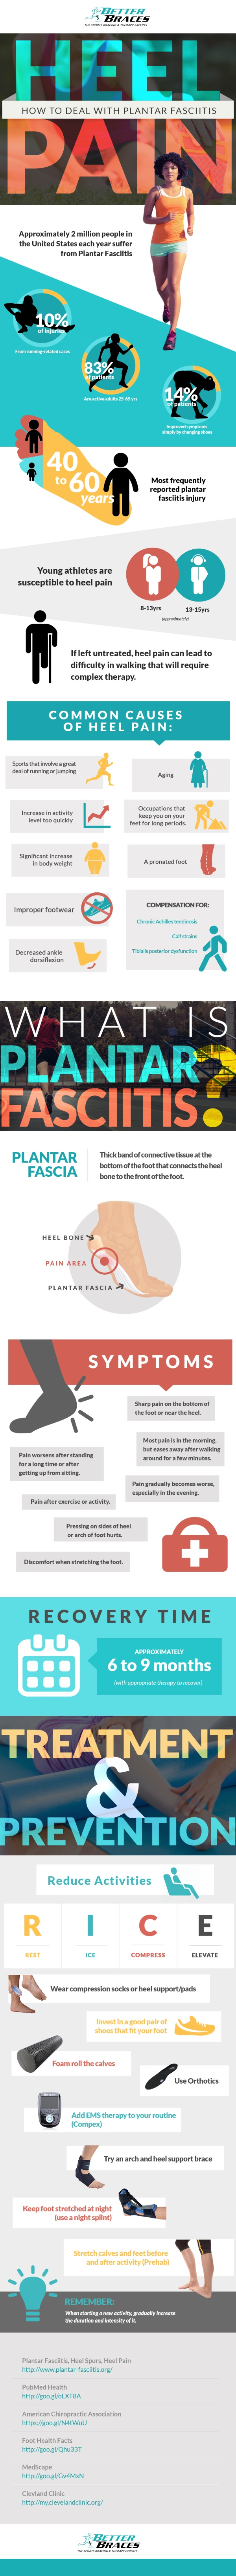 plantar fasciitis infographic on heel pain